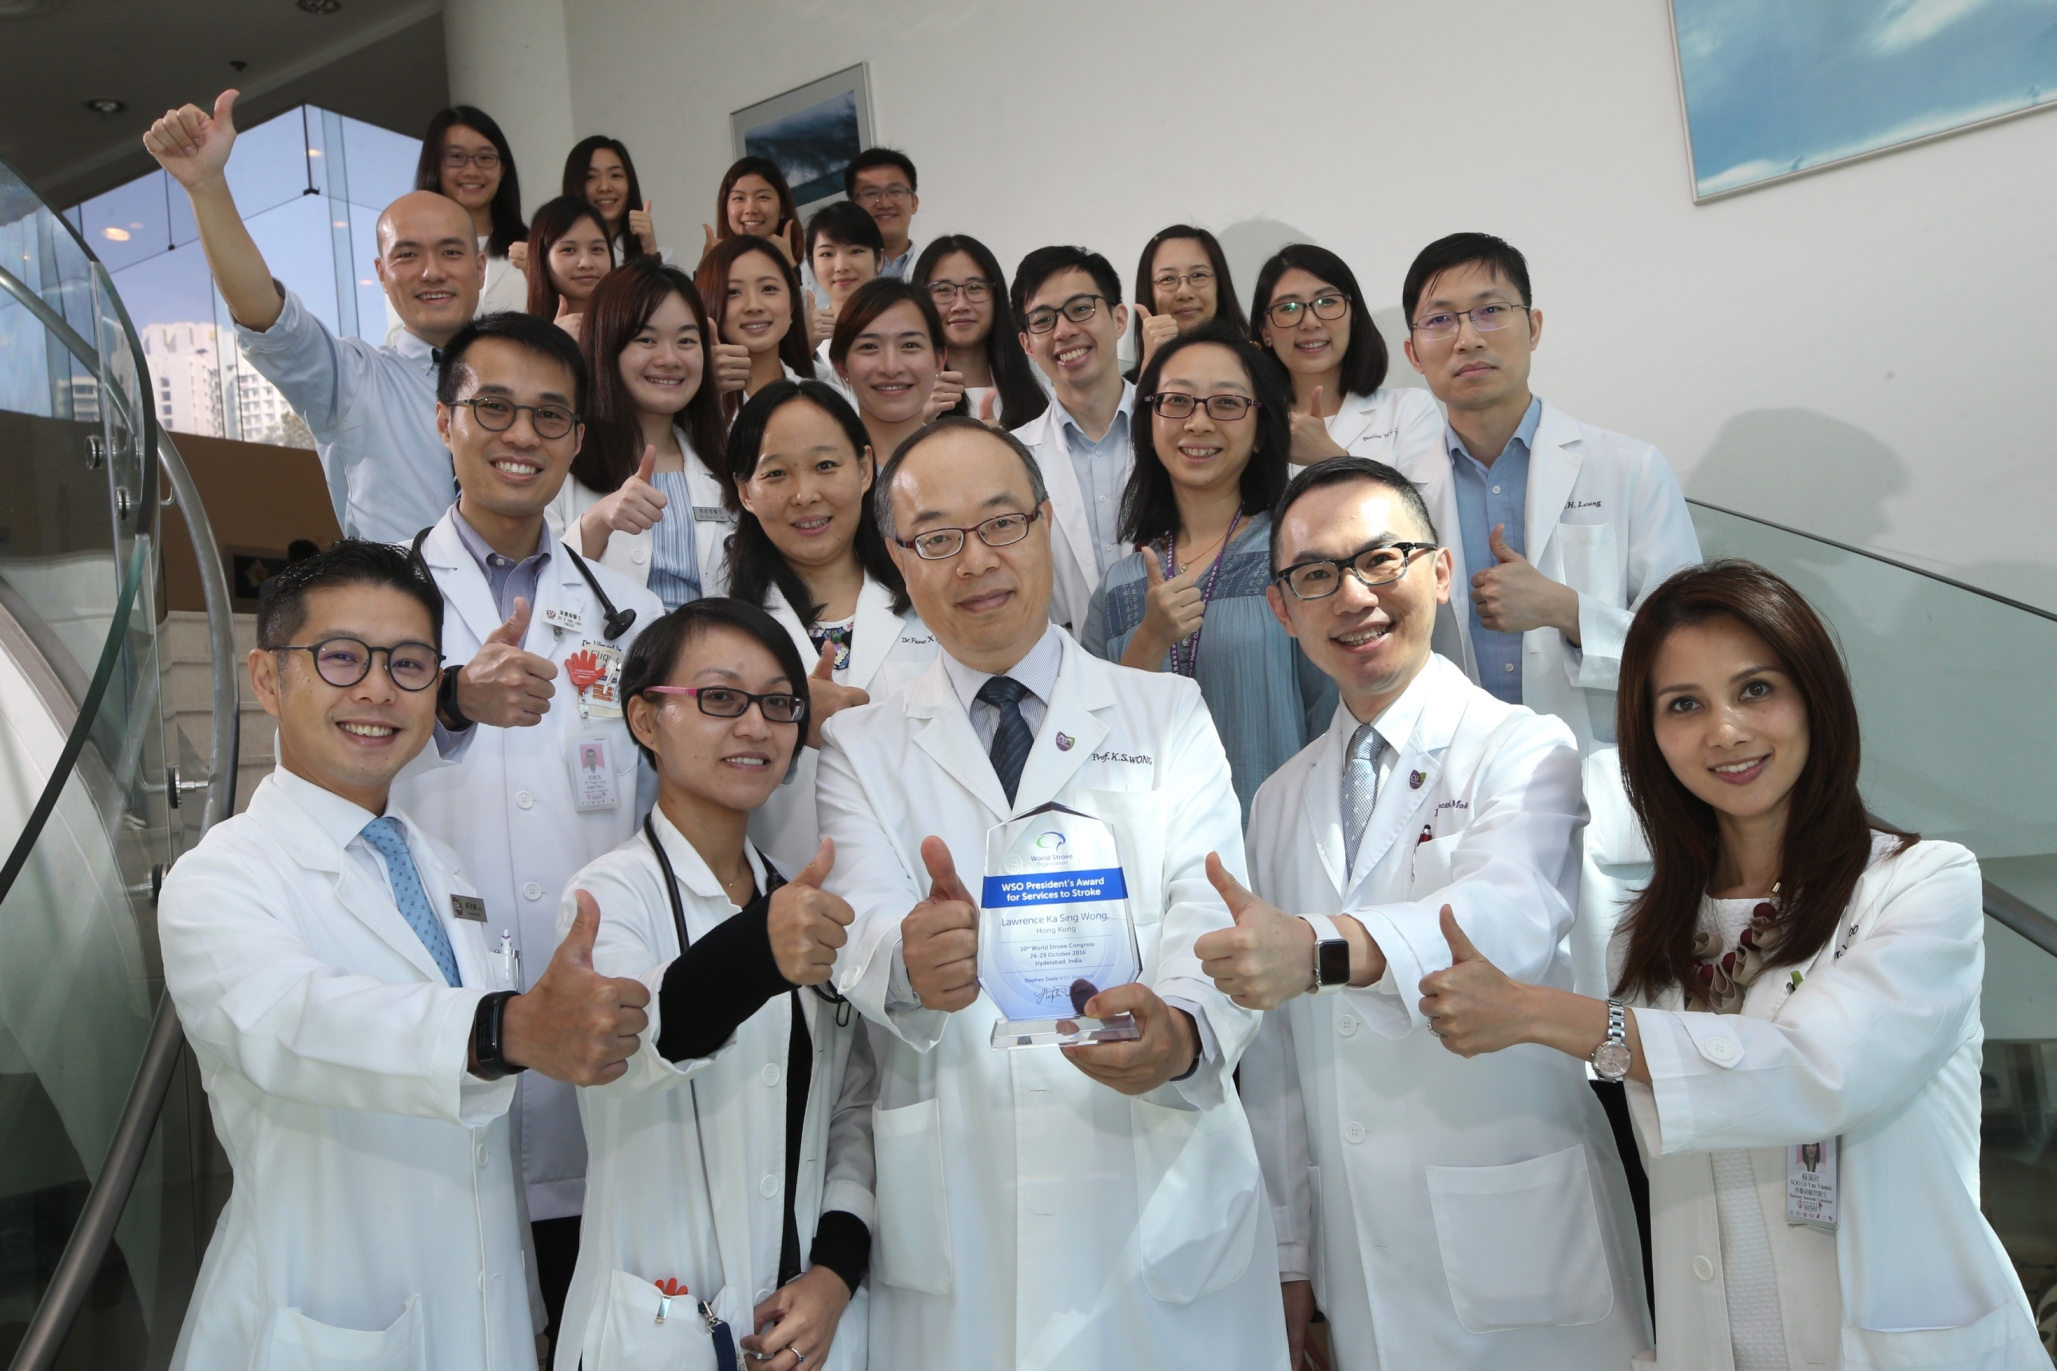 Prof. Lawrence Ka Sing WONG (front row centre), Mok Hing Yiu Professor of Medicine and Head of Division of Neurology, Department of Medicine and Therapeutics, CUHK receives the 'World Stroke Organization President's Award for Services to Stroke' this year for the contribution of him and his team in stroke research.